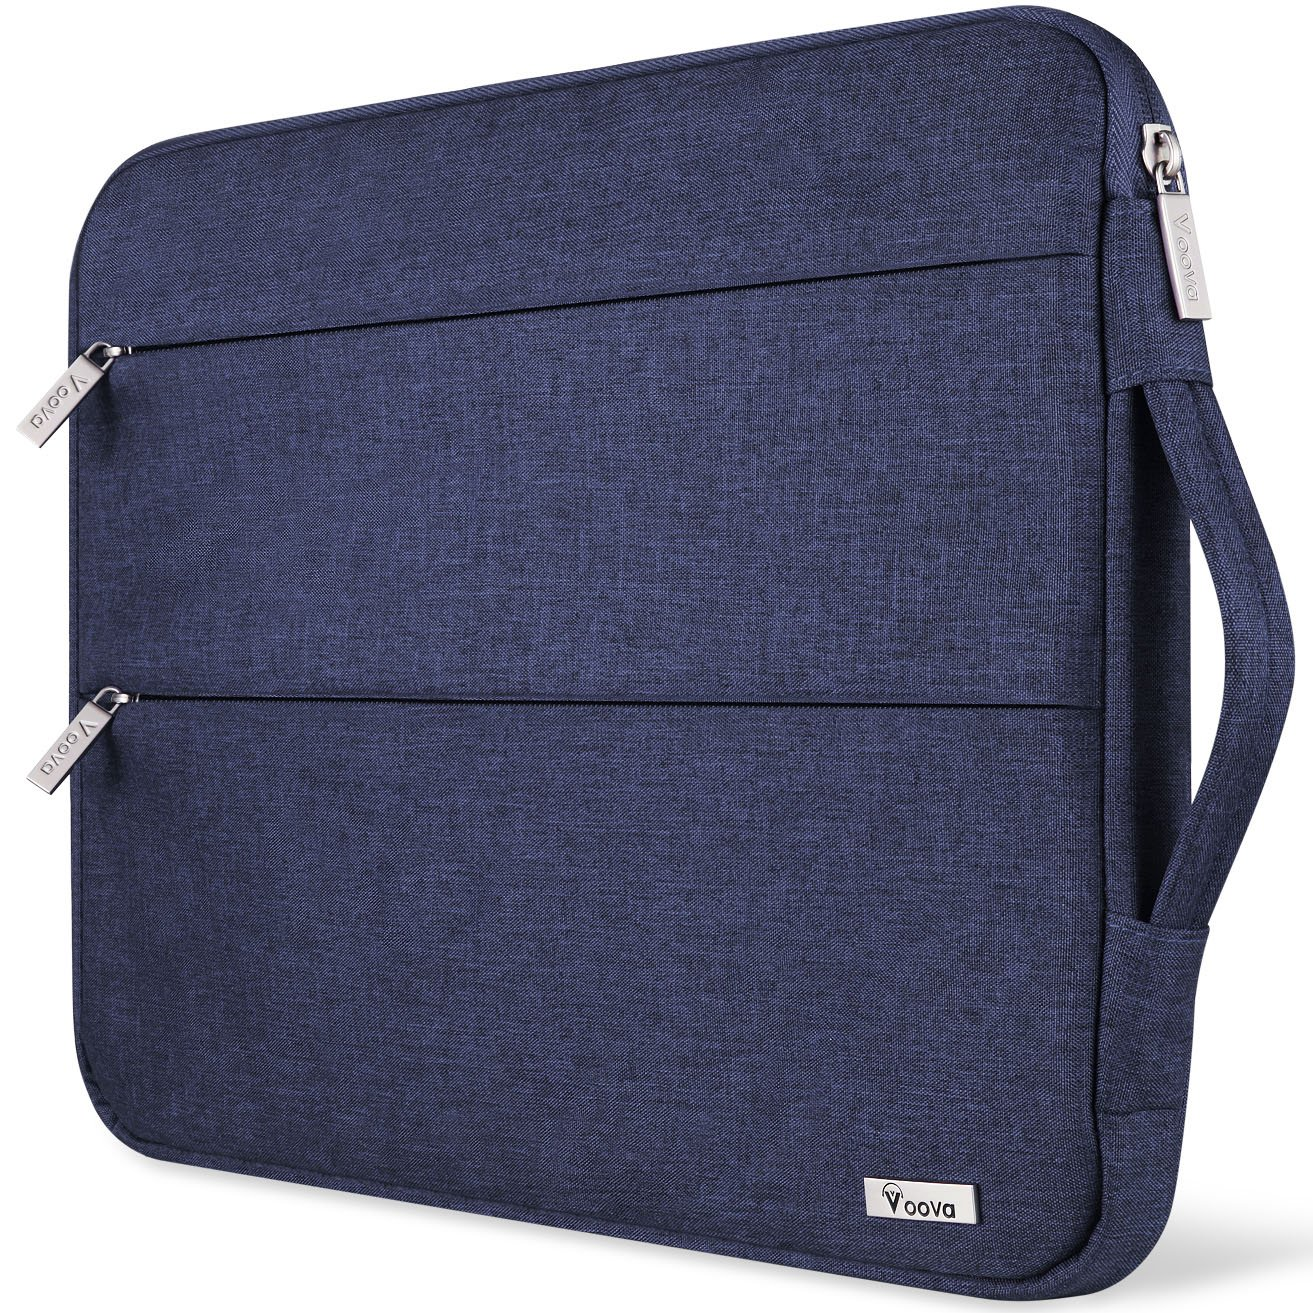 Voova 11 11.6 12 Inch Laptop Sleeve Case Cover, Water Resistant Computer Protective Bag Compatible with MacBook Air 11, Mac 12, Surface Pro 6 5 4 3, Acer Asus Chromebook Ultrabook with Handle, Blue by Voova